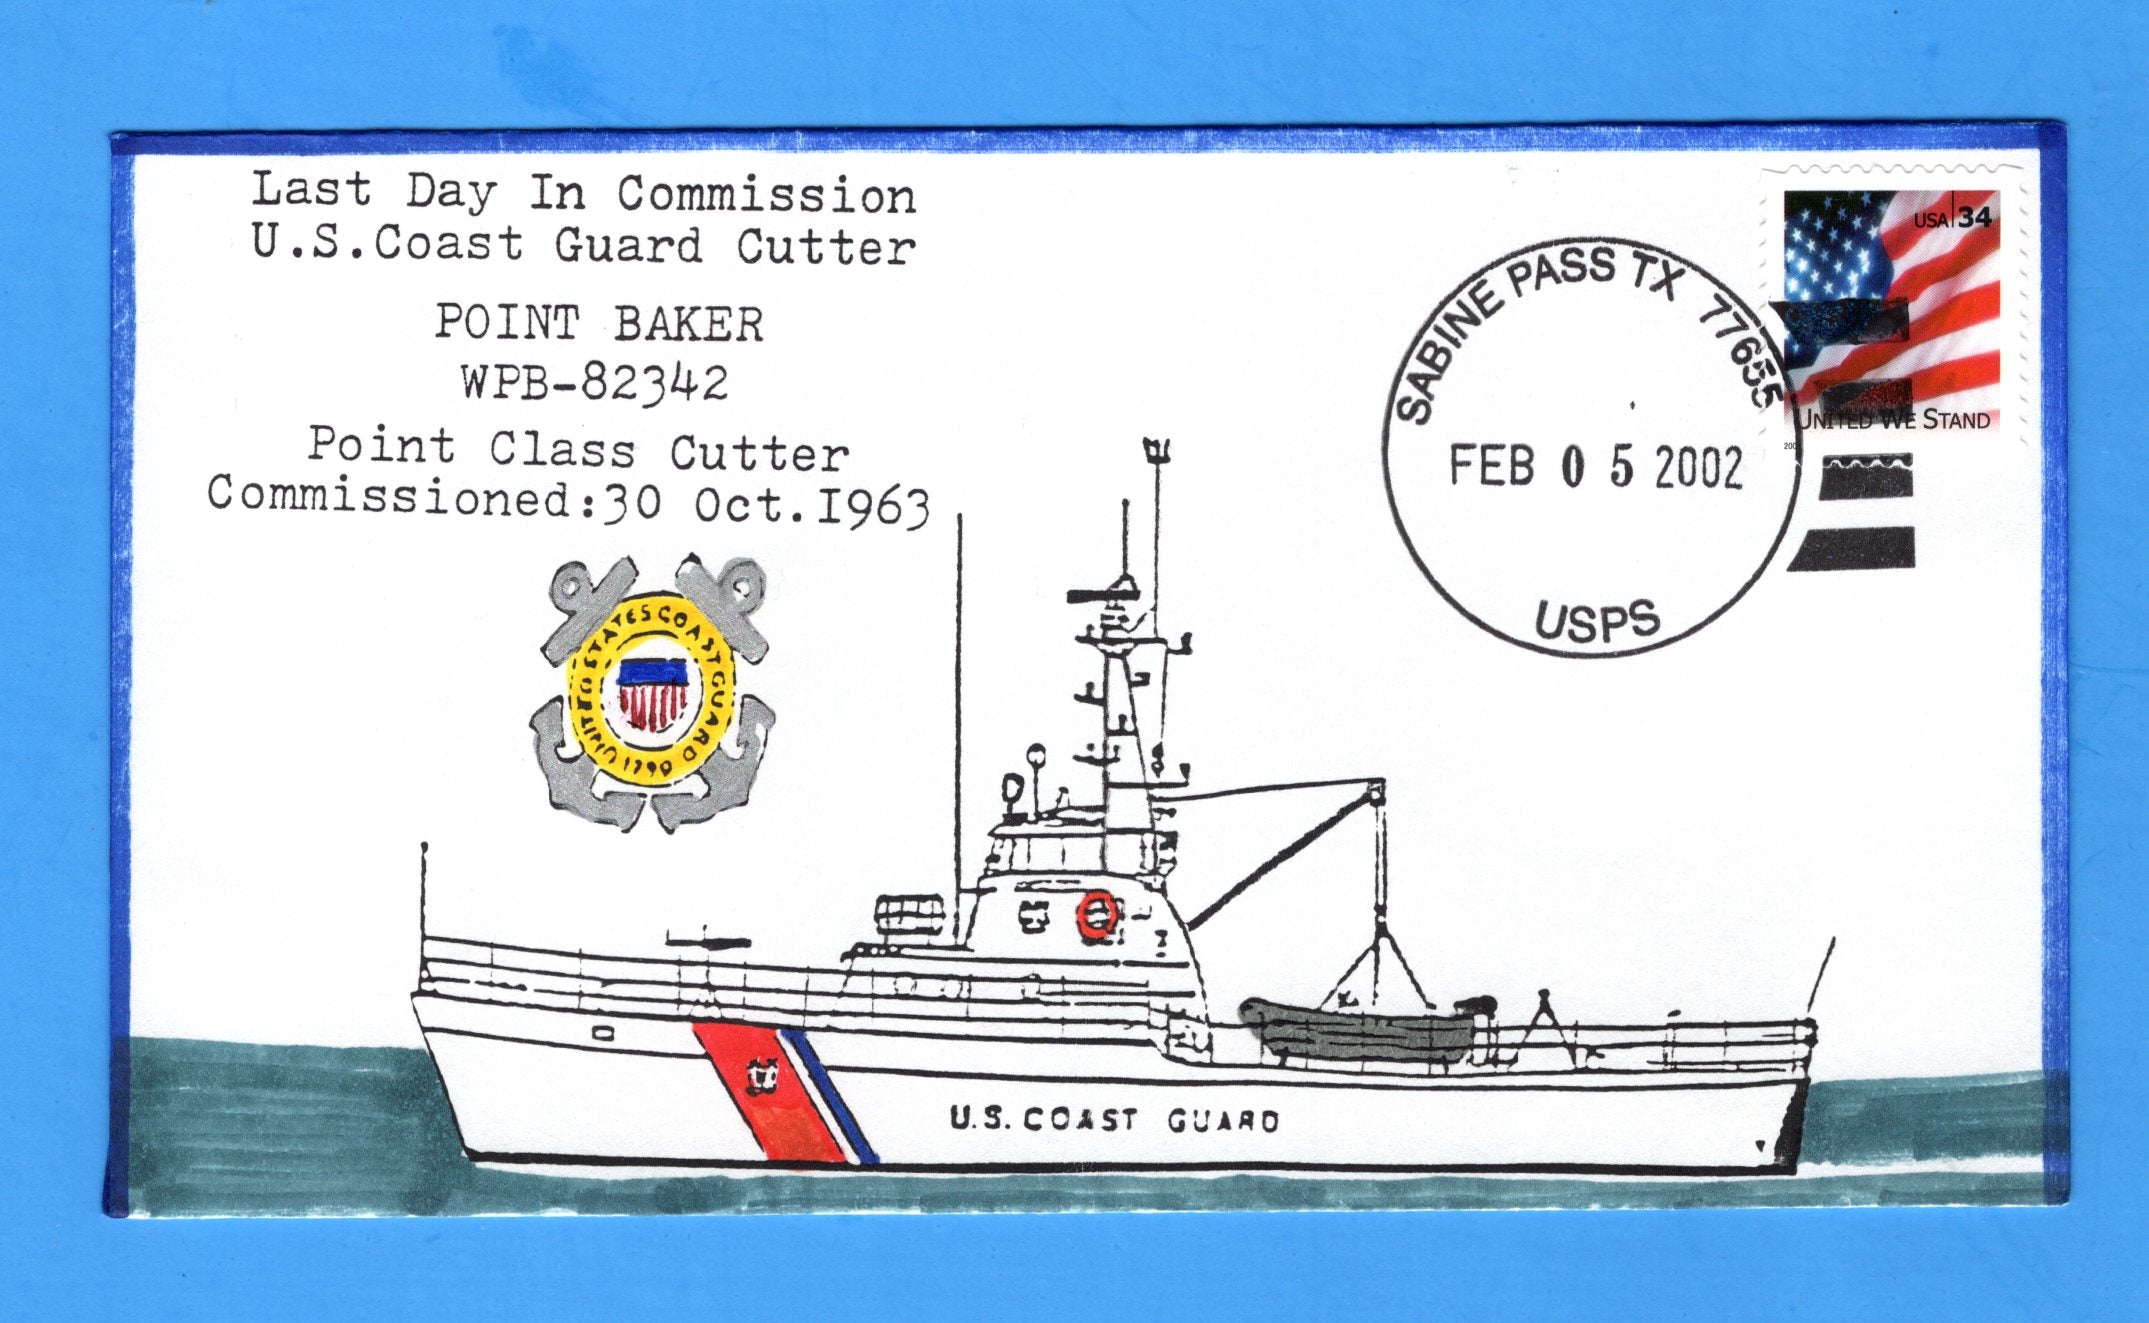 USCGC Point Baker WPB-82342 Last Day in Commission February 5, 2002 - Hand Drawn and Colored Cachet by Bill Everett